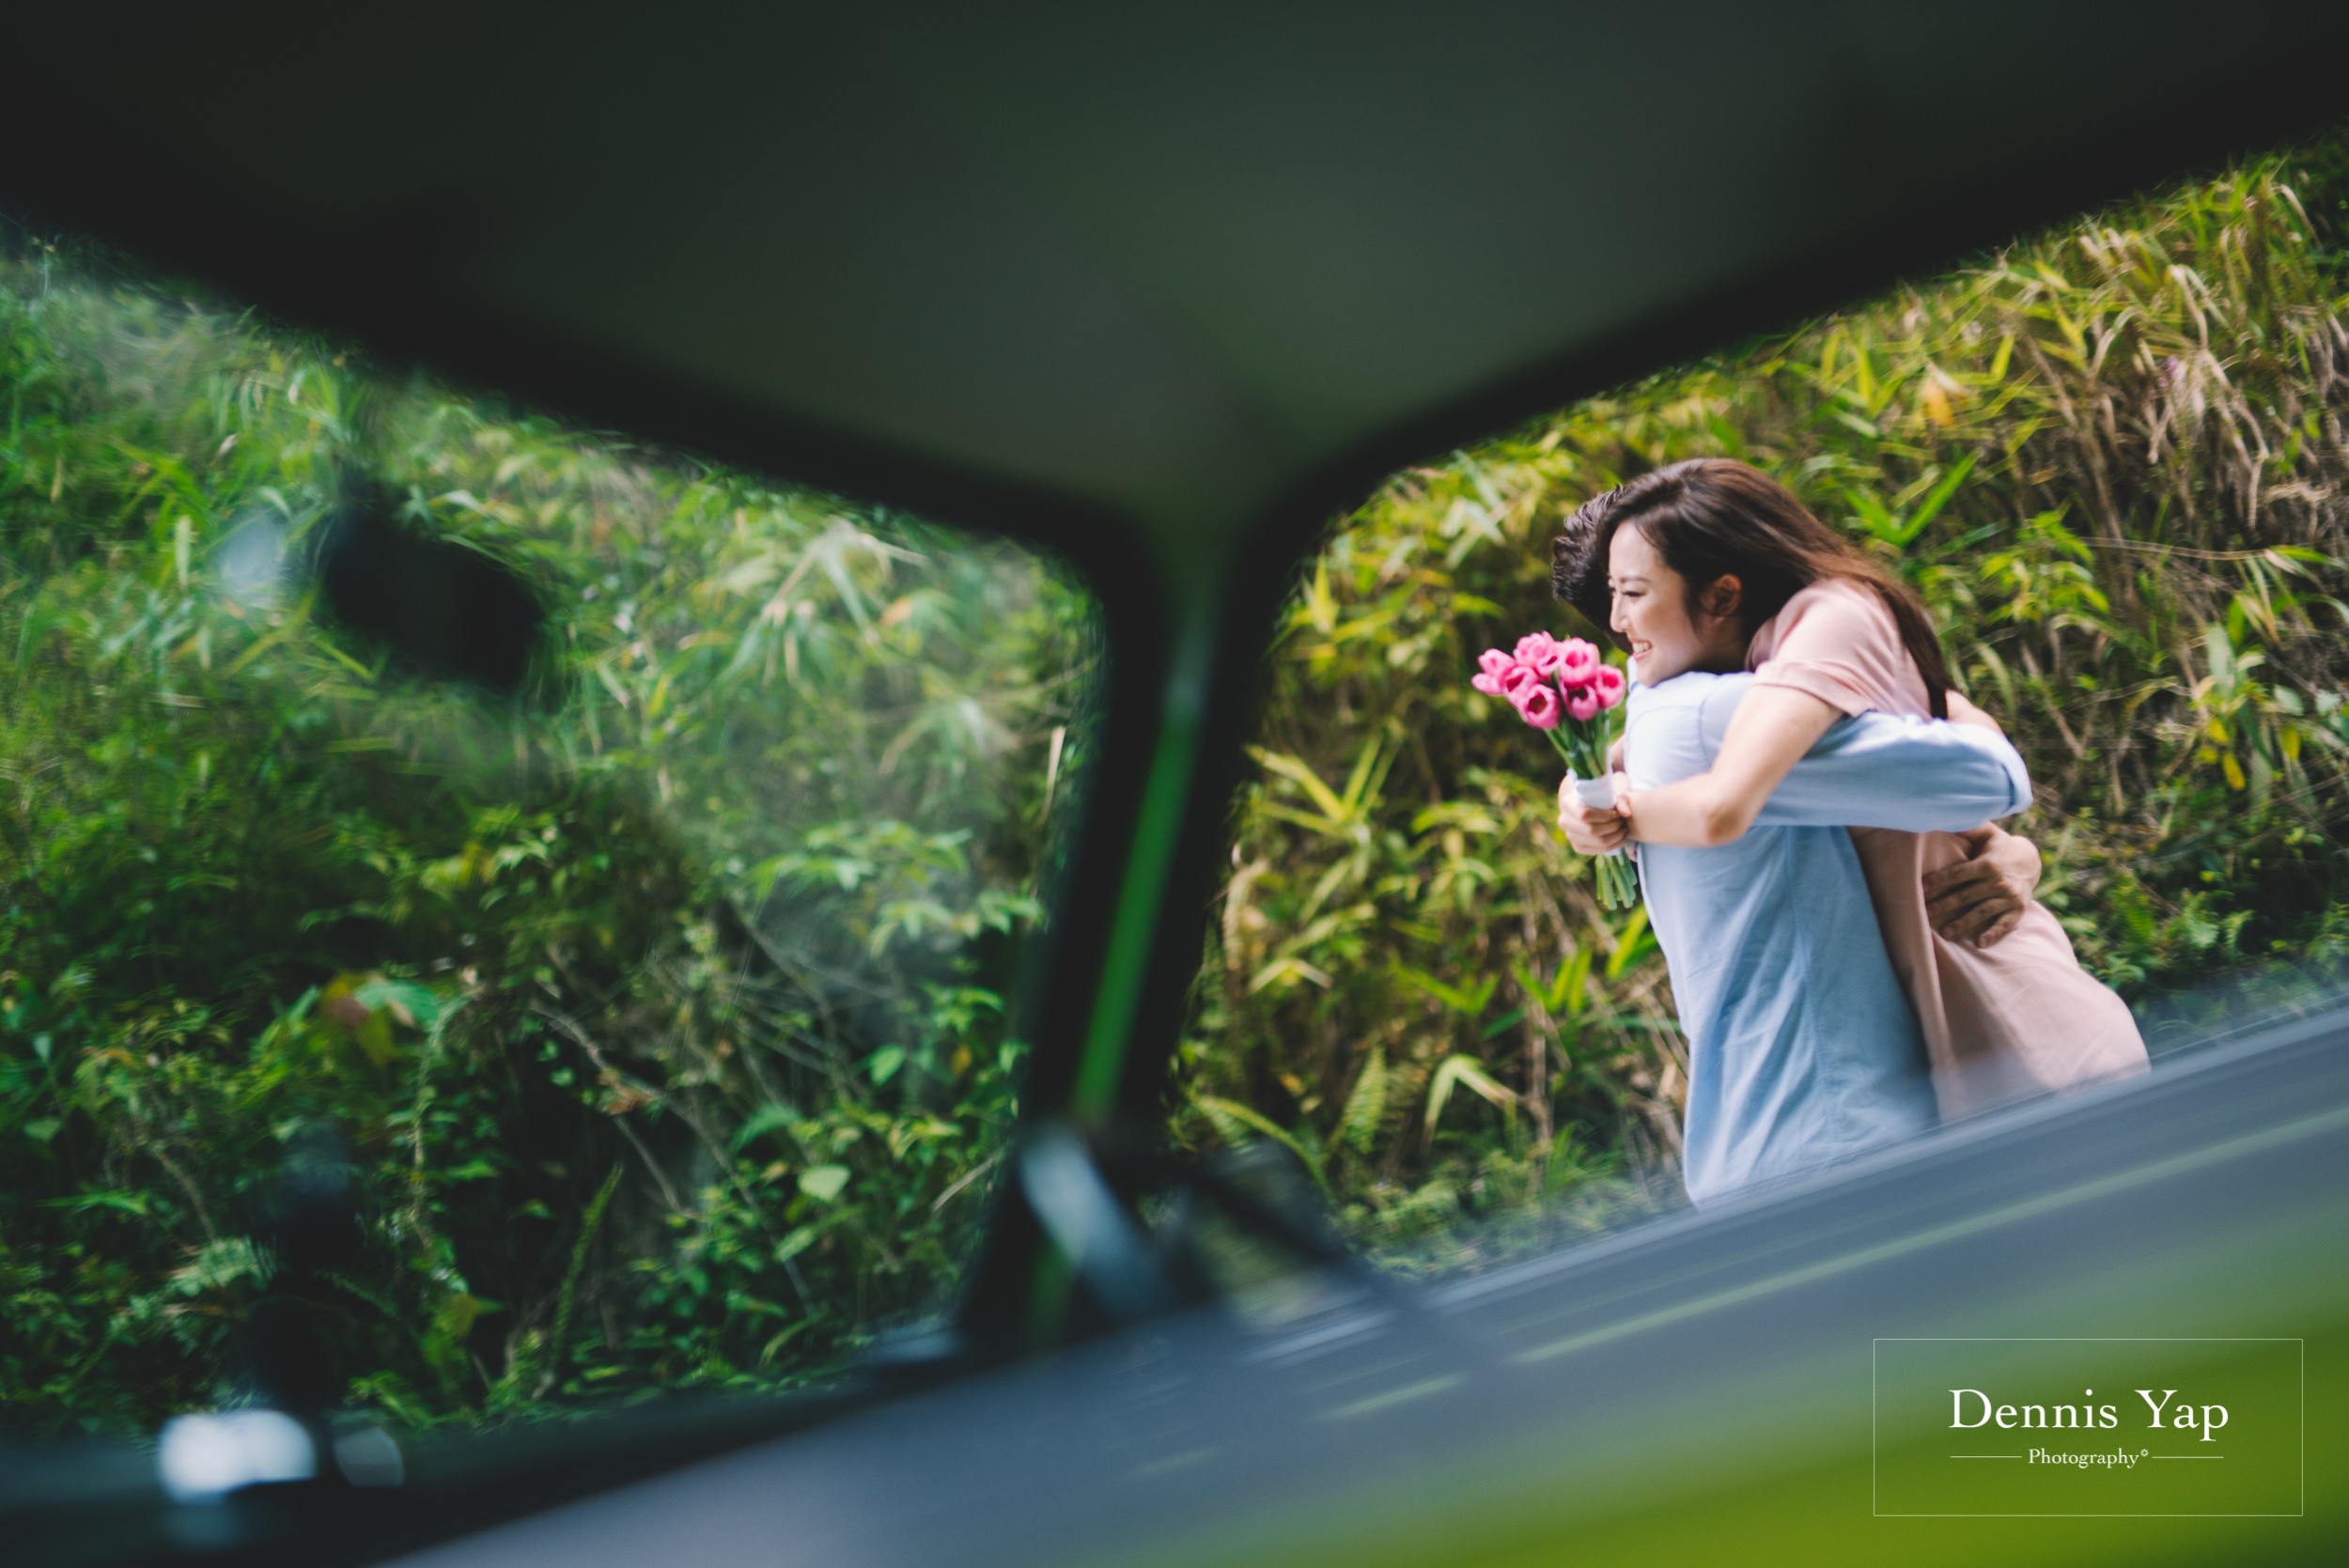 steven ching pre wedding hulu langat namwah road background beloved lookout point dennis yap photography malaysia top photographer-21.jpg